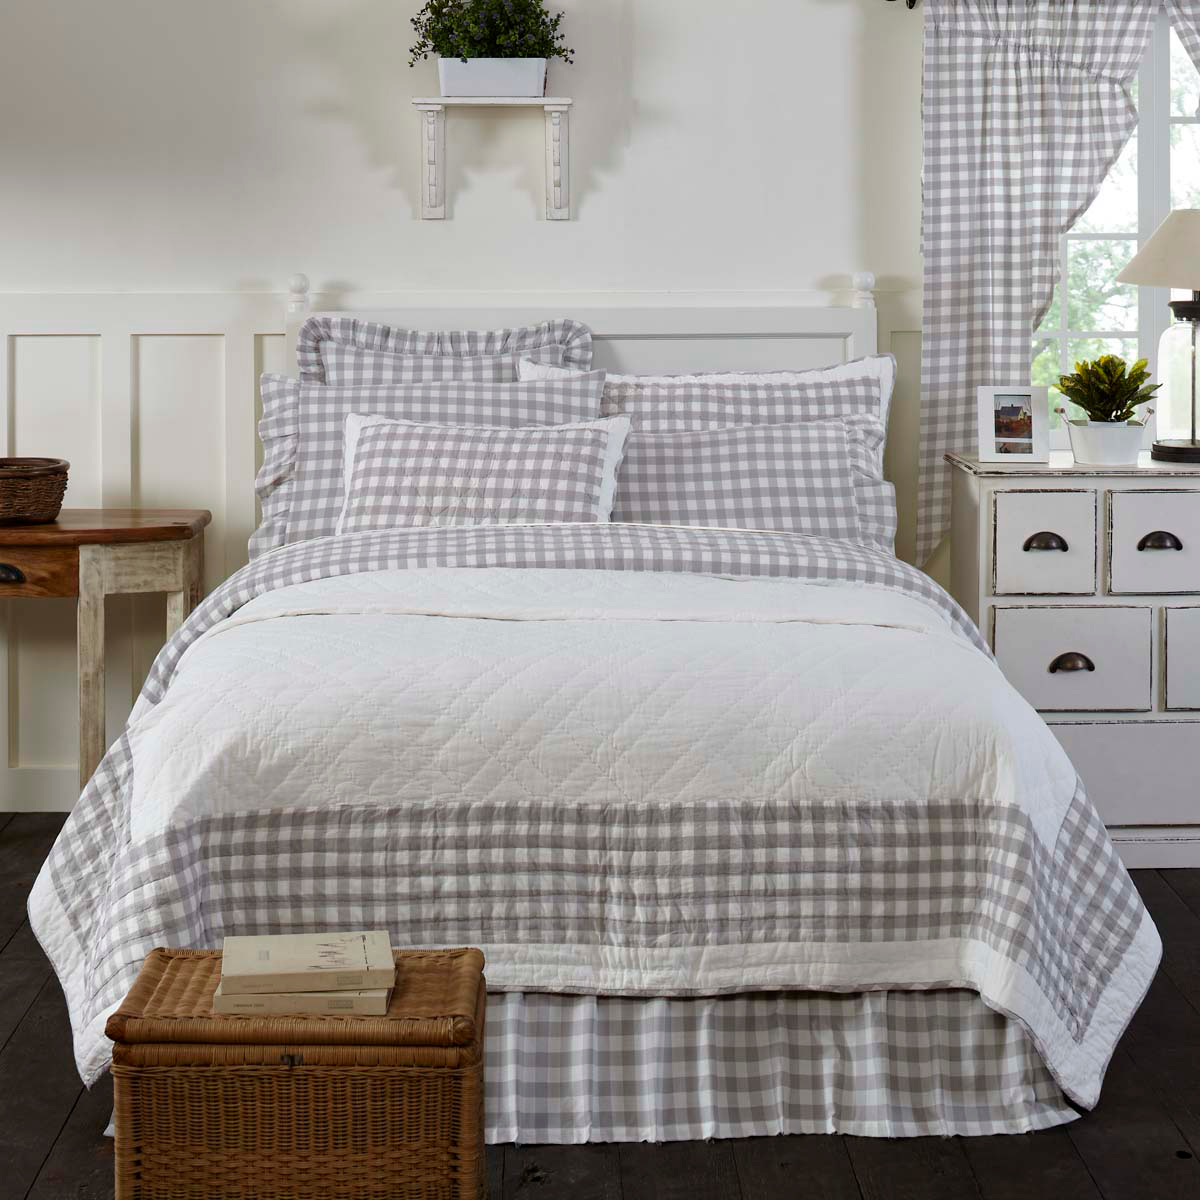 comforter checkered s buffalo and zozzy pure hash decor pictures of black bedroom appearance white improve home to your check